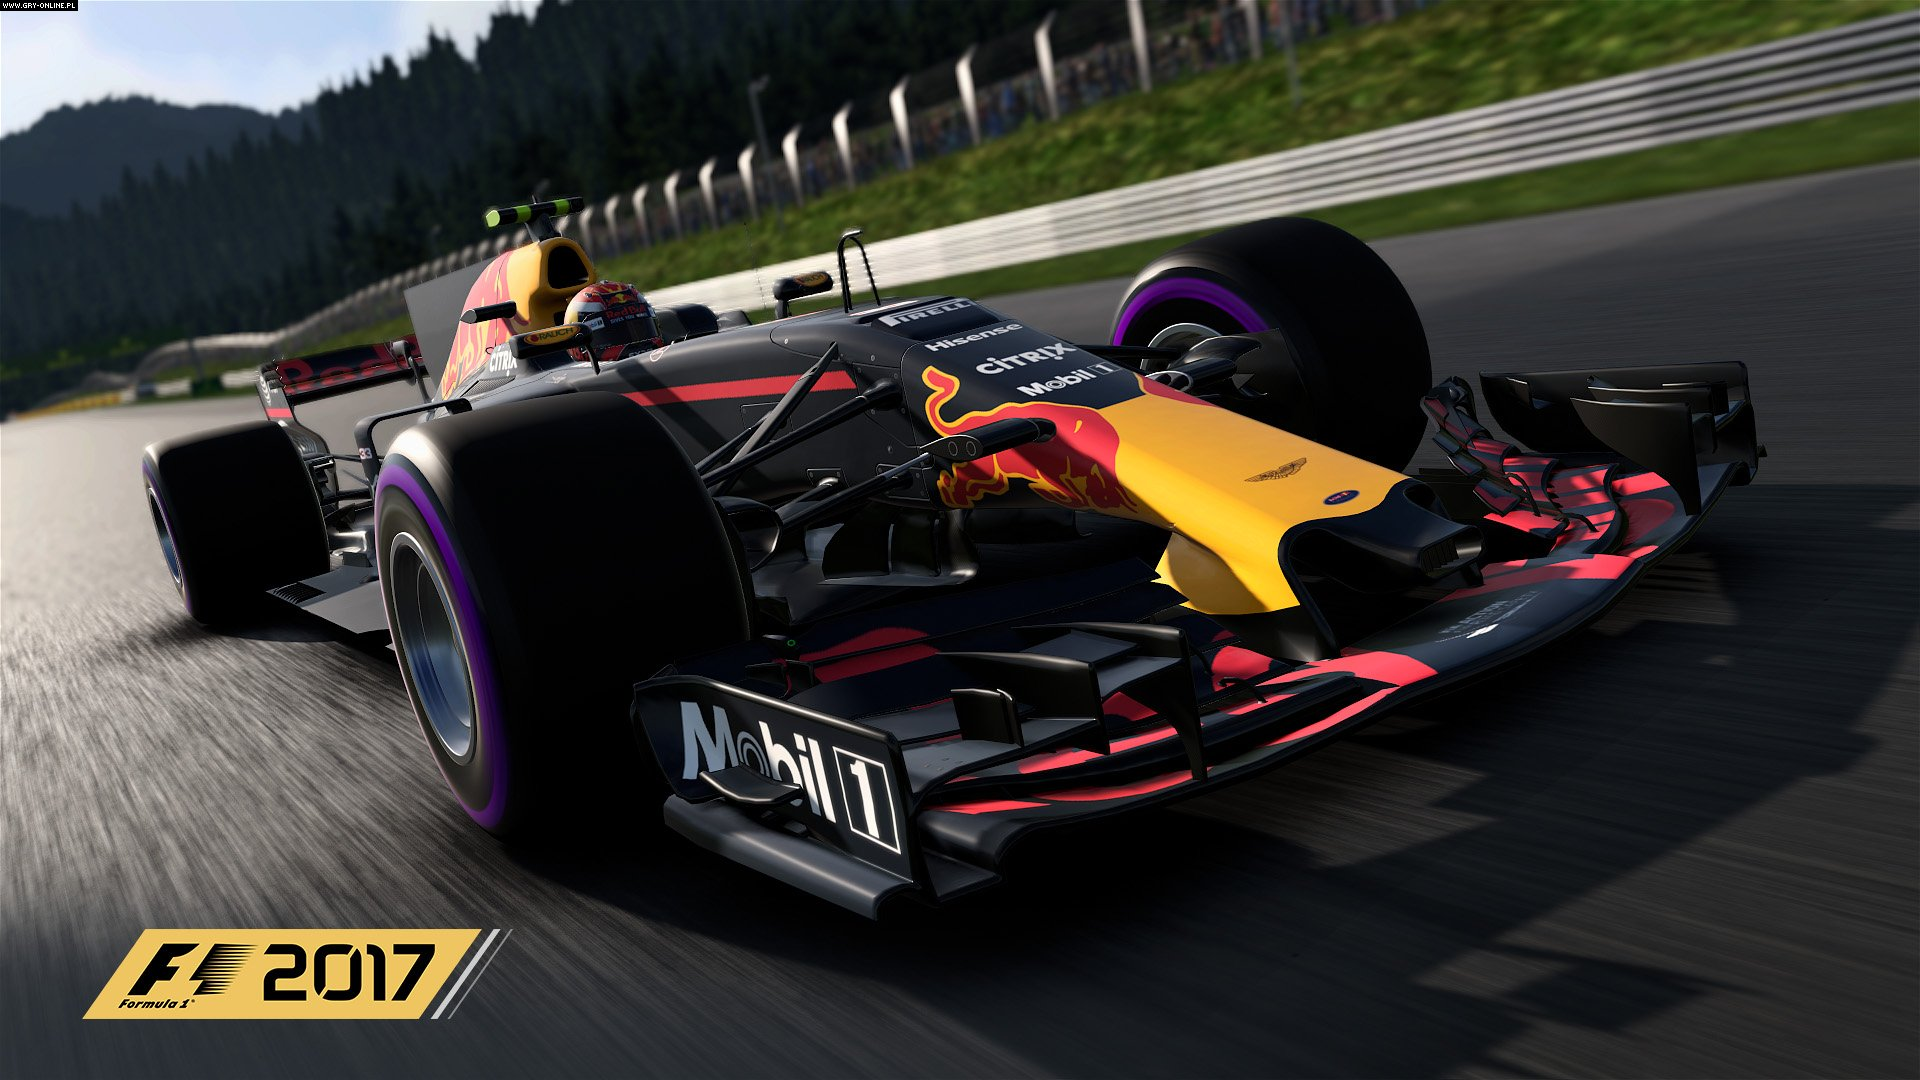 F1 2017 PC, PS4, XONE Games Image 10/10, Codemasters Software